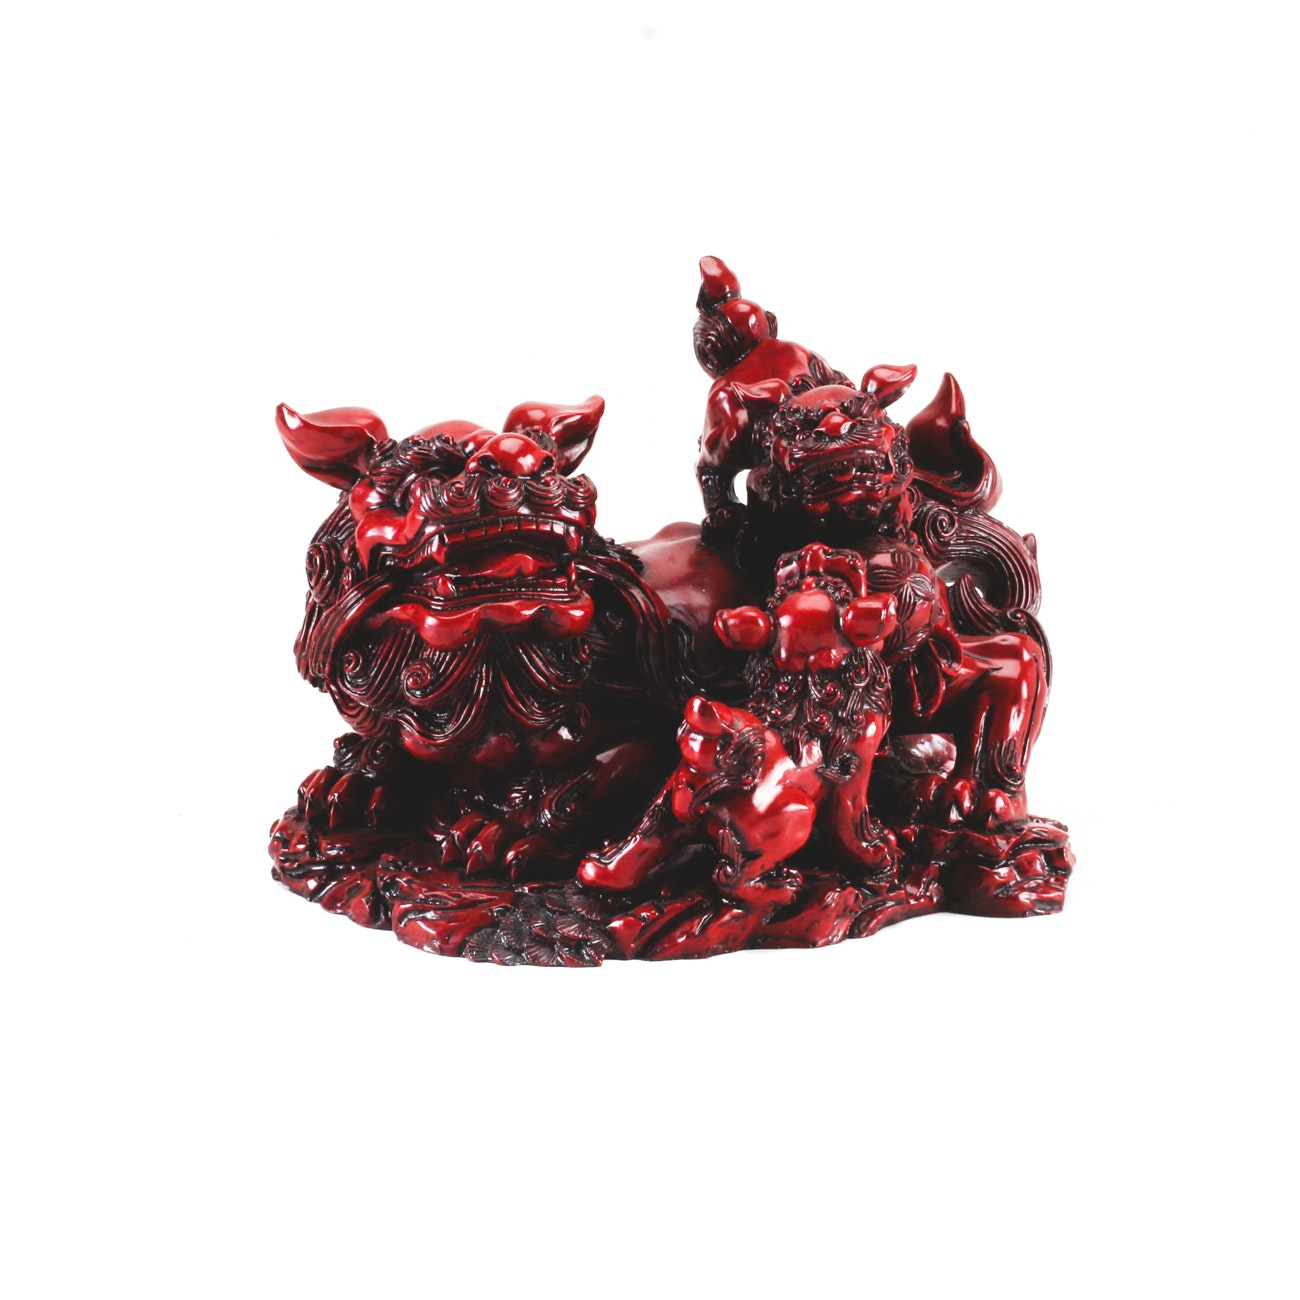 Chinese Guardian Lions Resin Sculpture